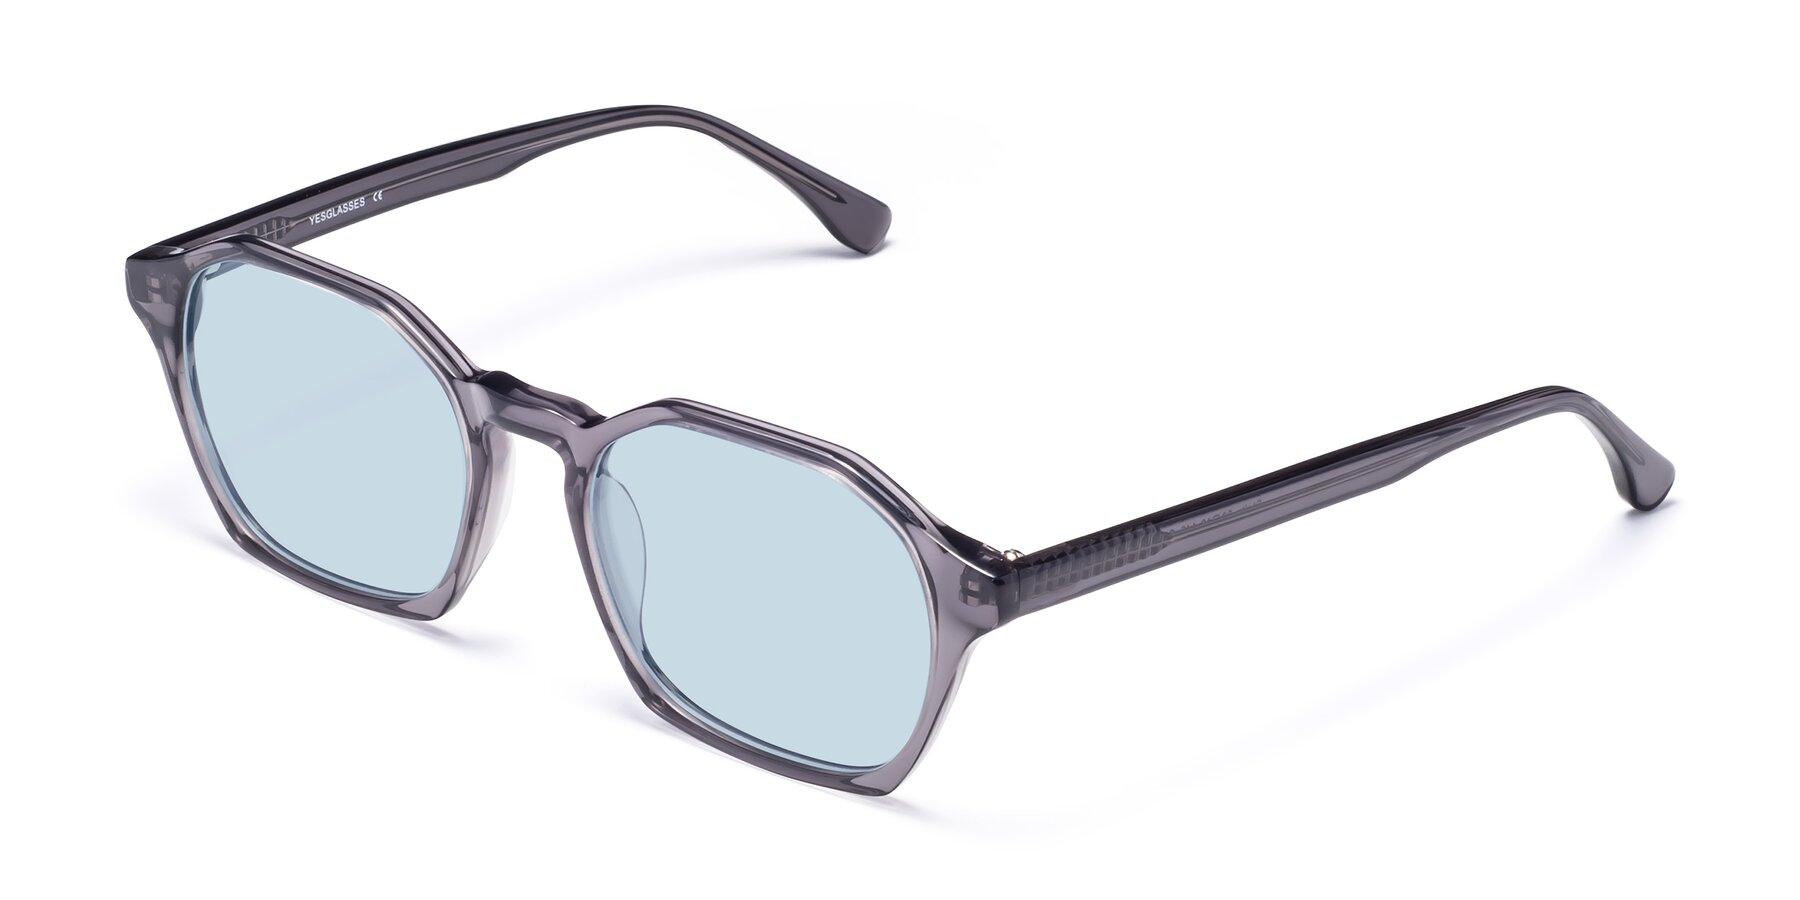 Angle of Stoltz in Translucent Gray with Light Blue Tinted Lenses